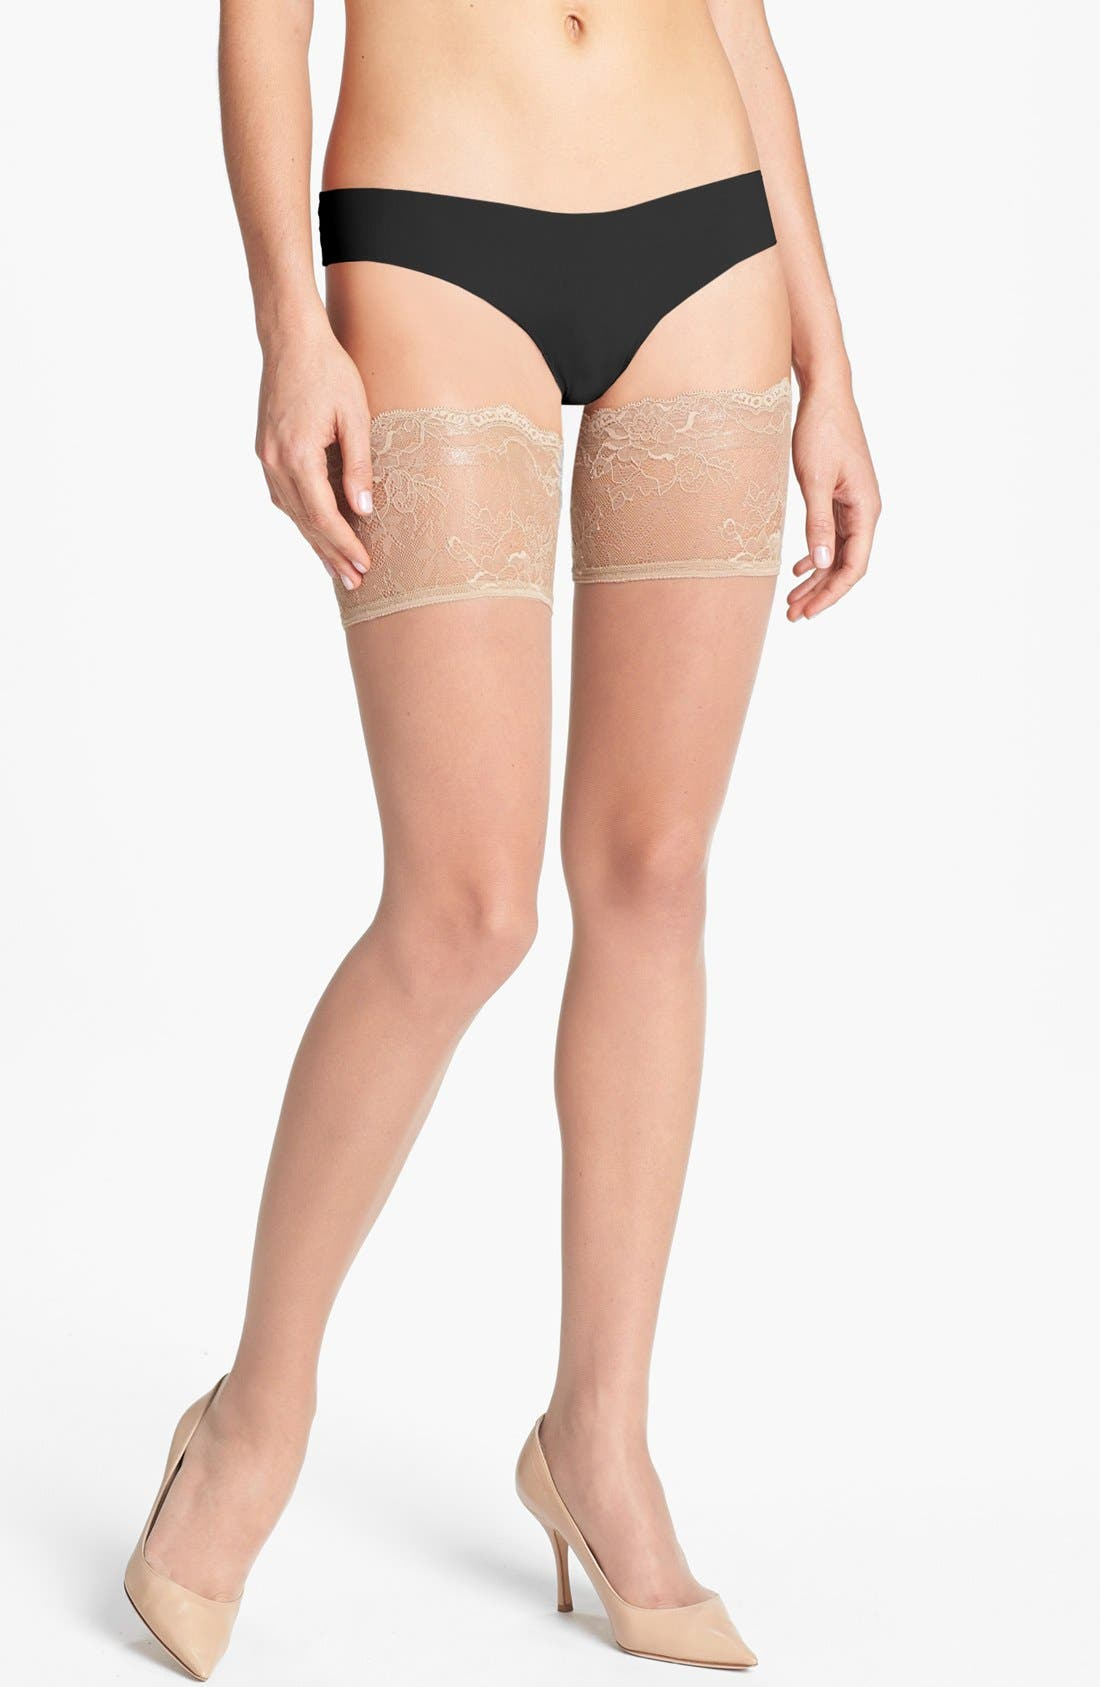 Donna Karan Lace Top Stay-Up Stockings,                         Main,                         color, Nude